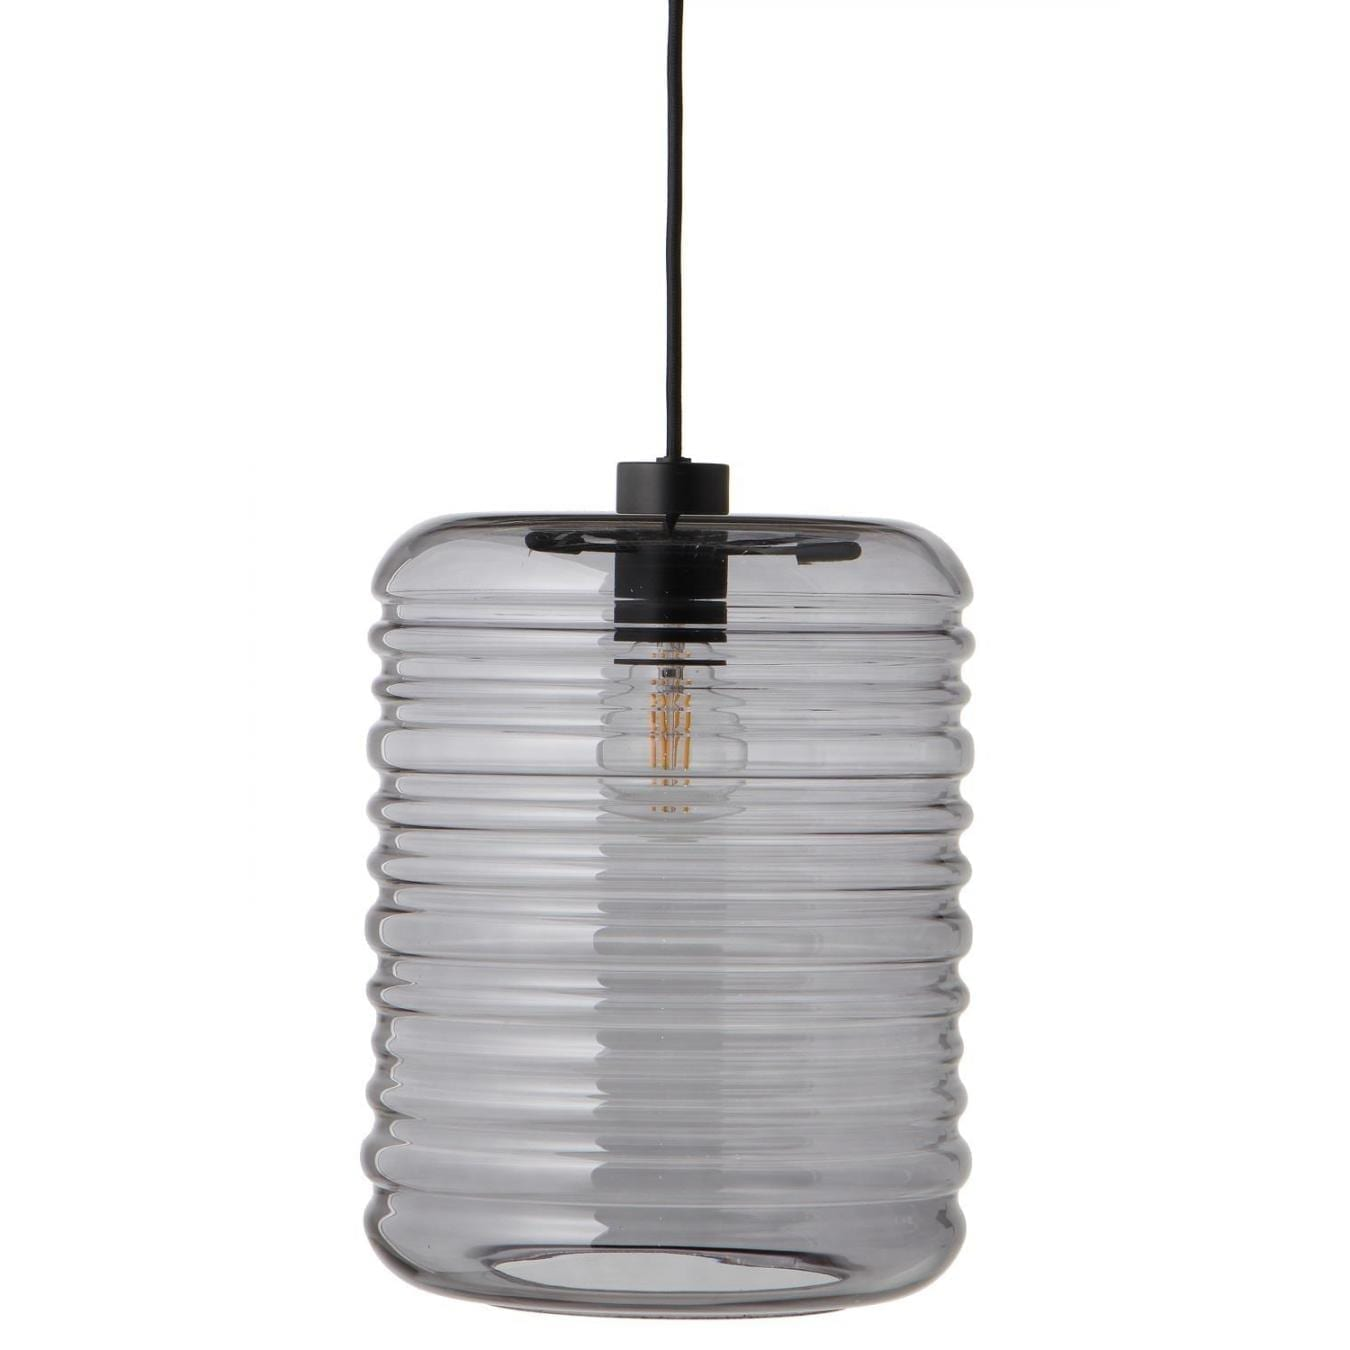 frandsen_glass_table_lamp_smoke_black__1